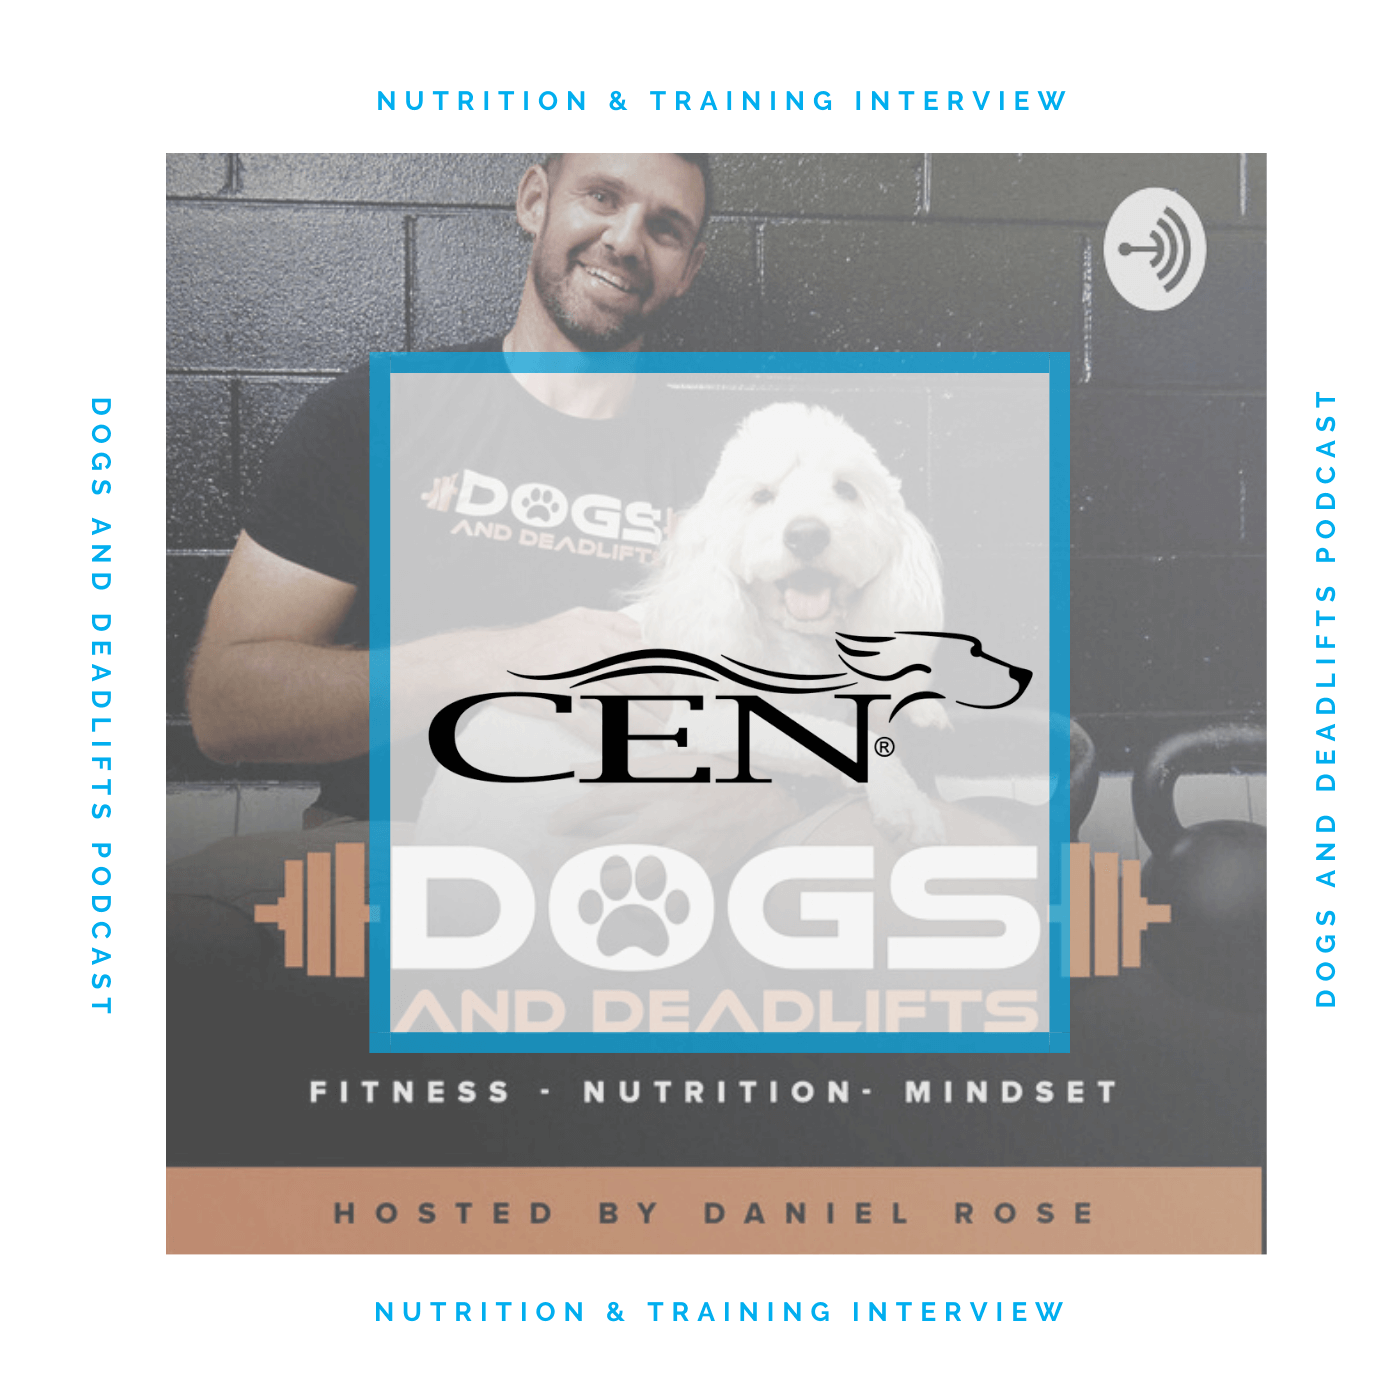 Episode 6 NUTRITION & TRAINING INTERVIEW - Dogs And Deadlifts Podcast